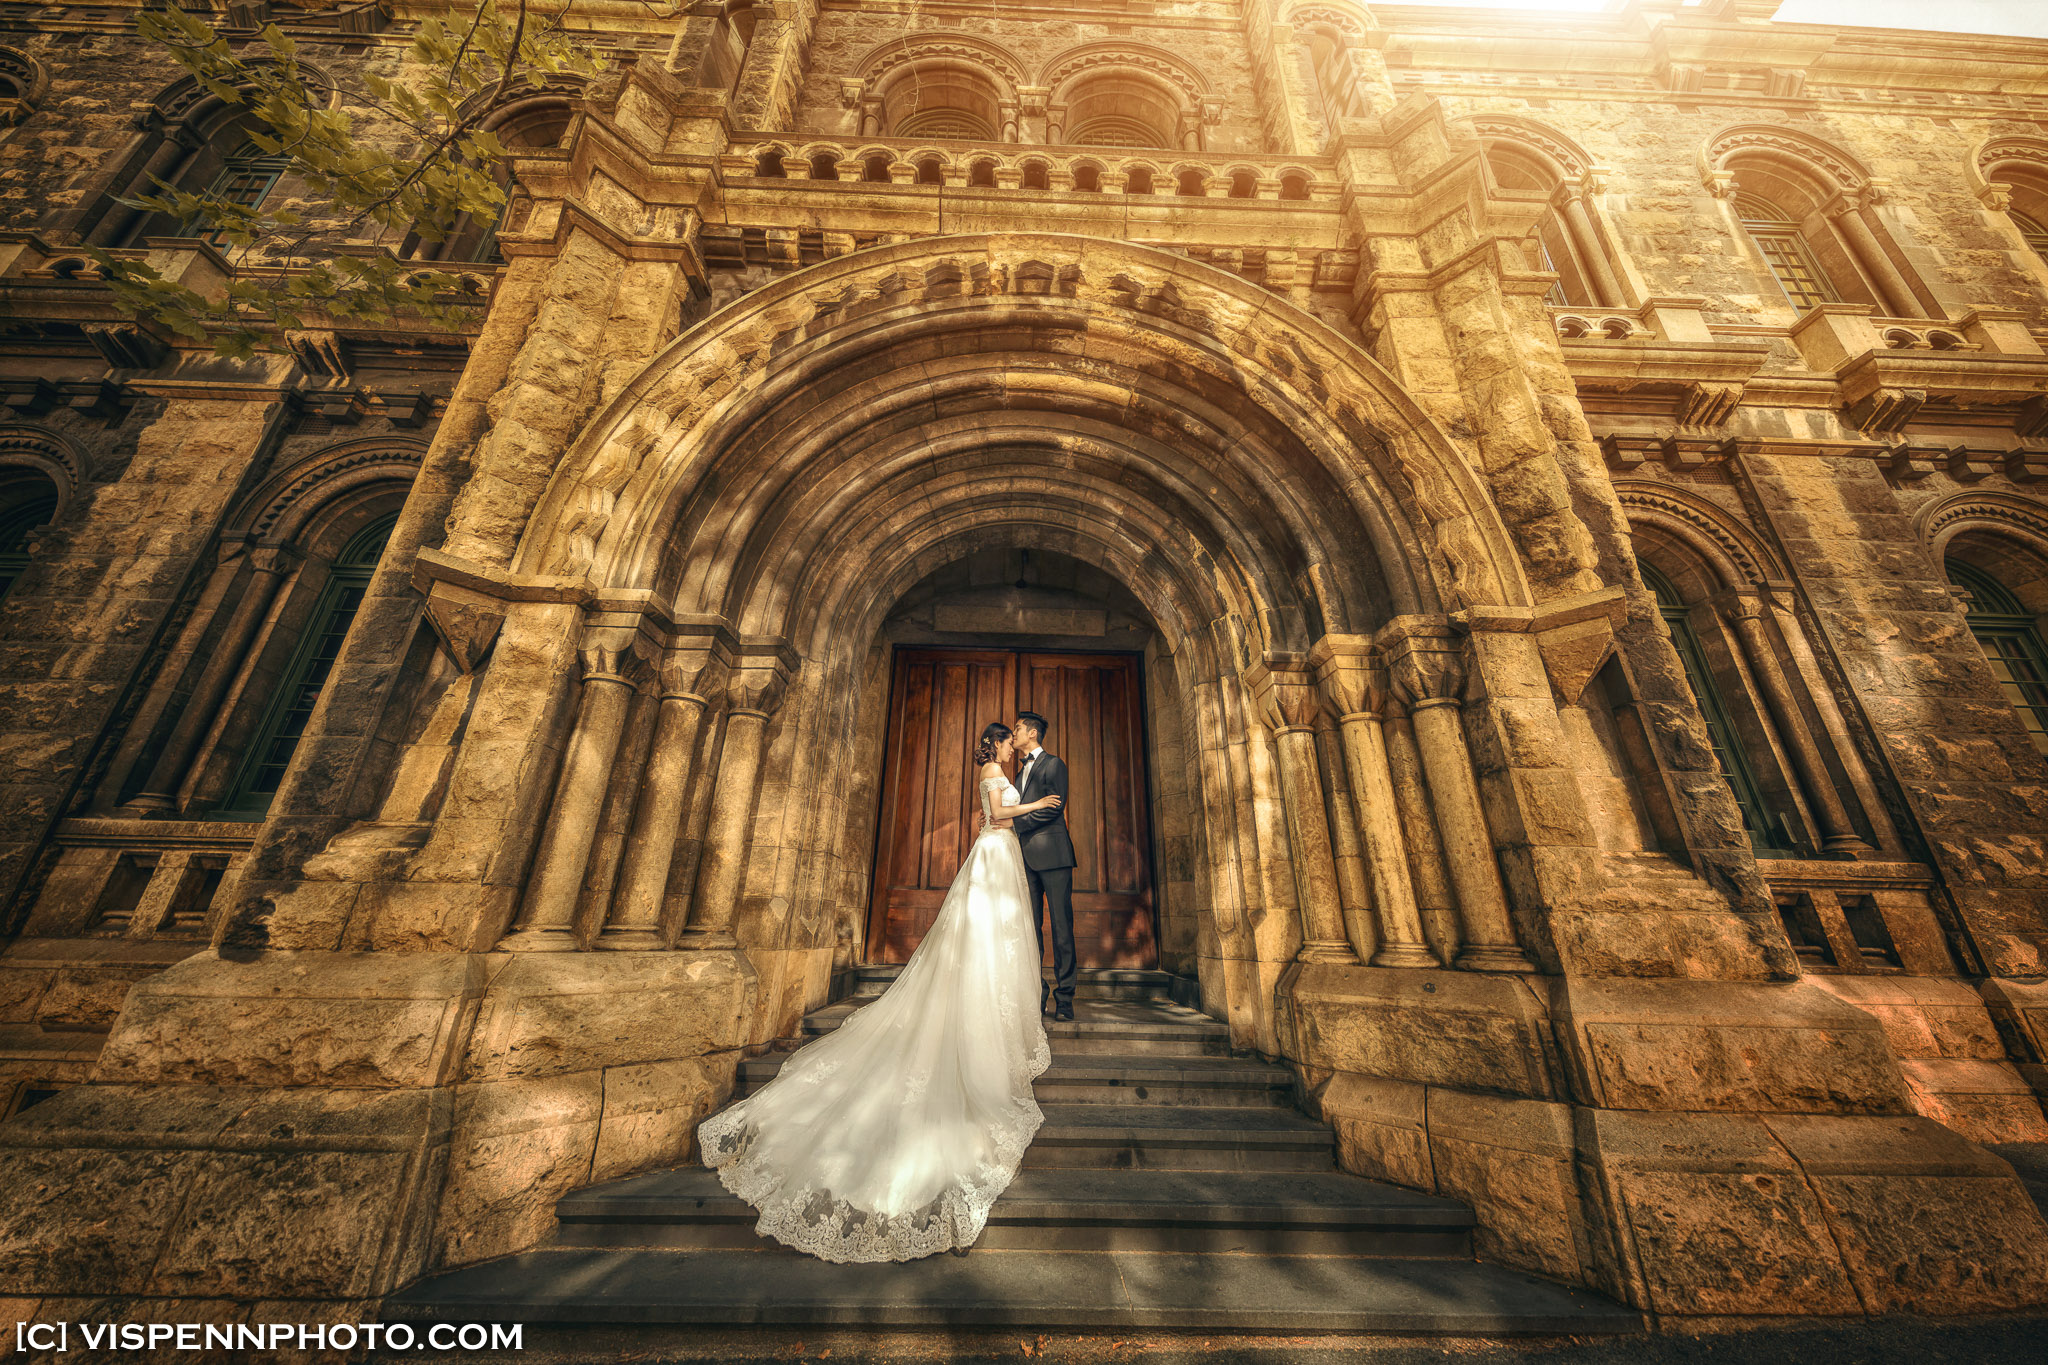 PRE WEDDING Photography Melbourne ZHPENN Cindi 1816 1 1